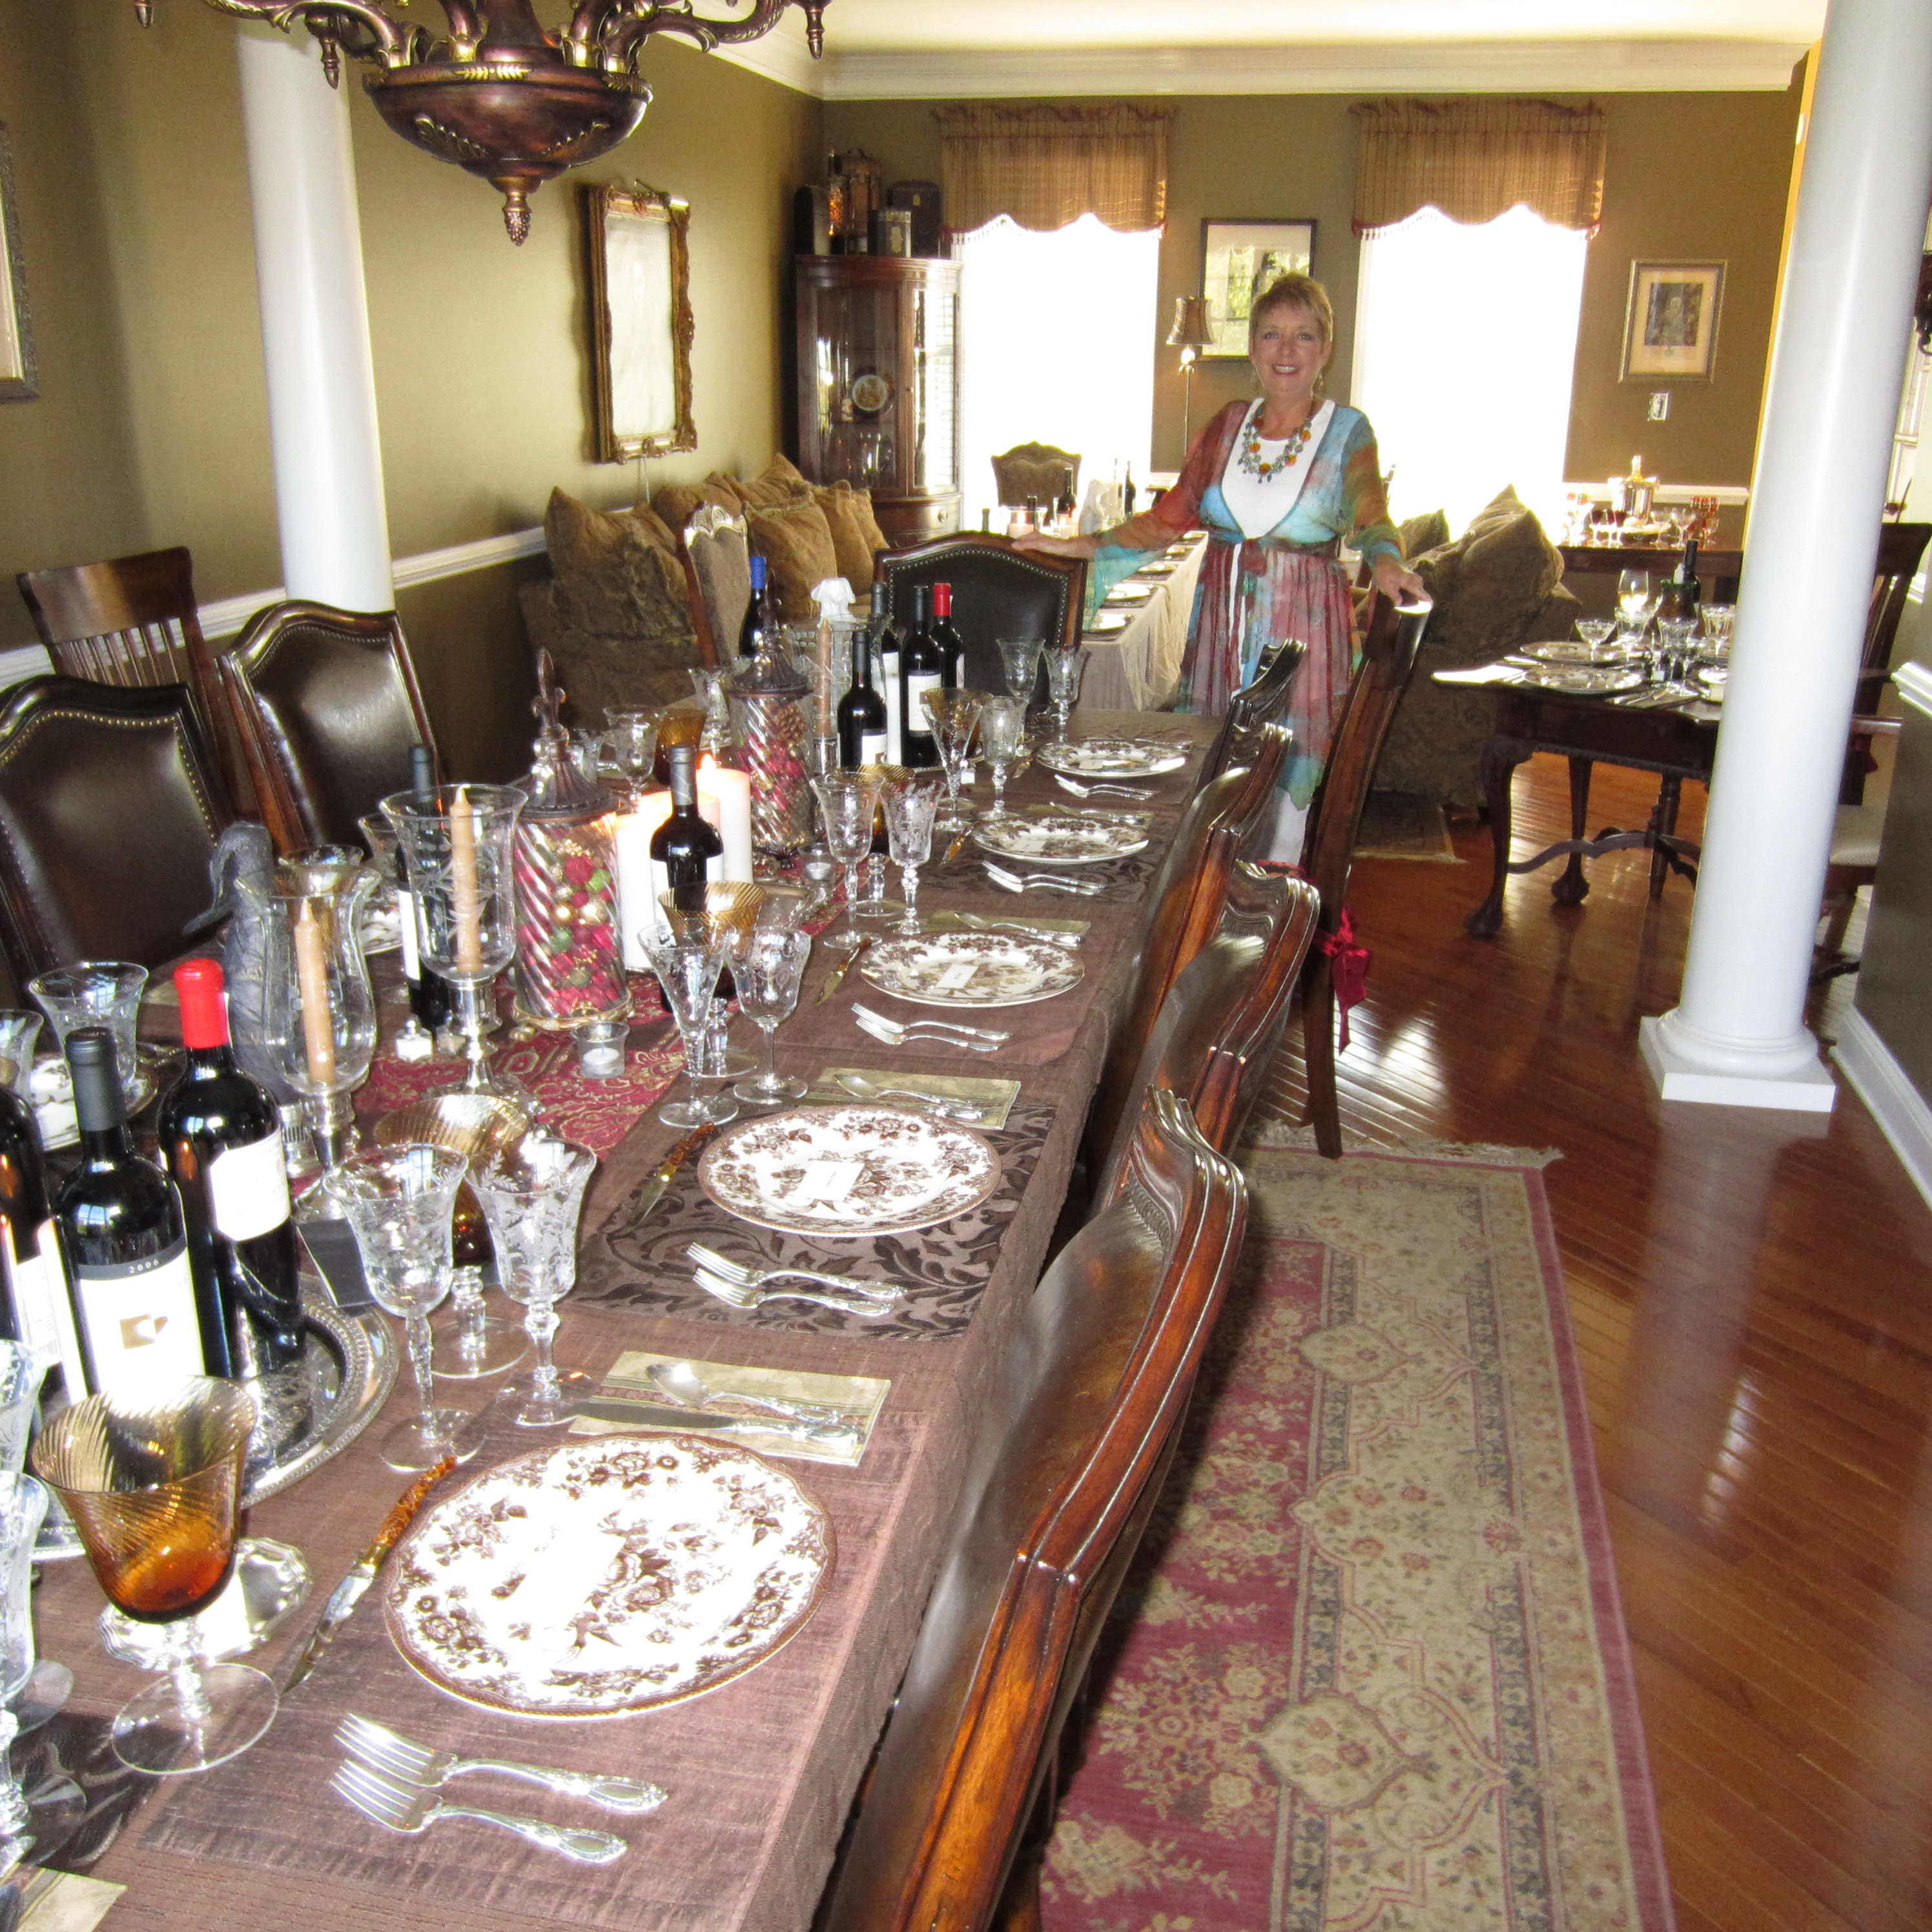 formal dining table setting. Table Setting 101 Formal Dining N